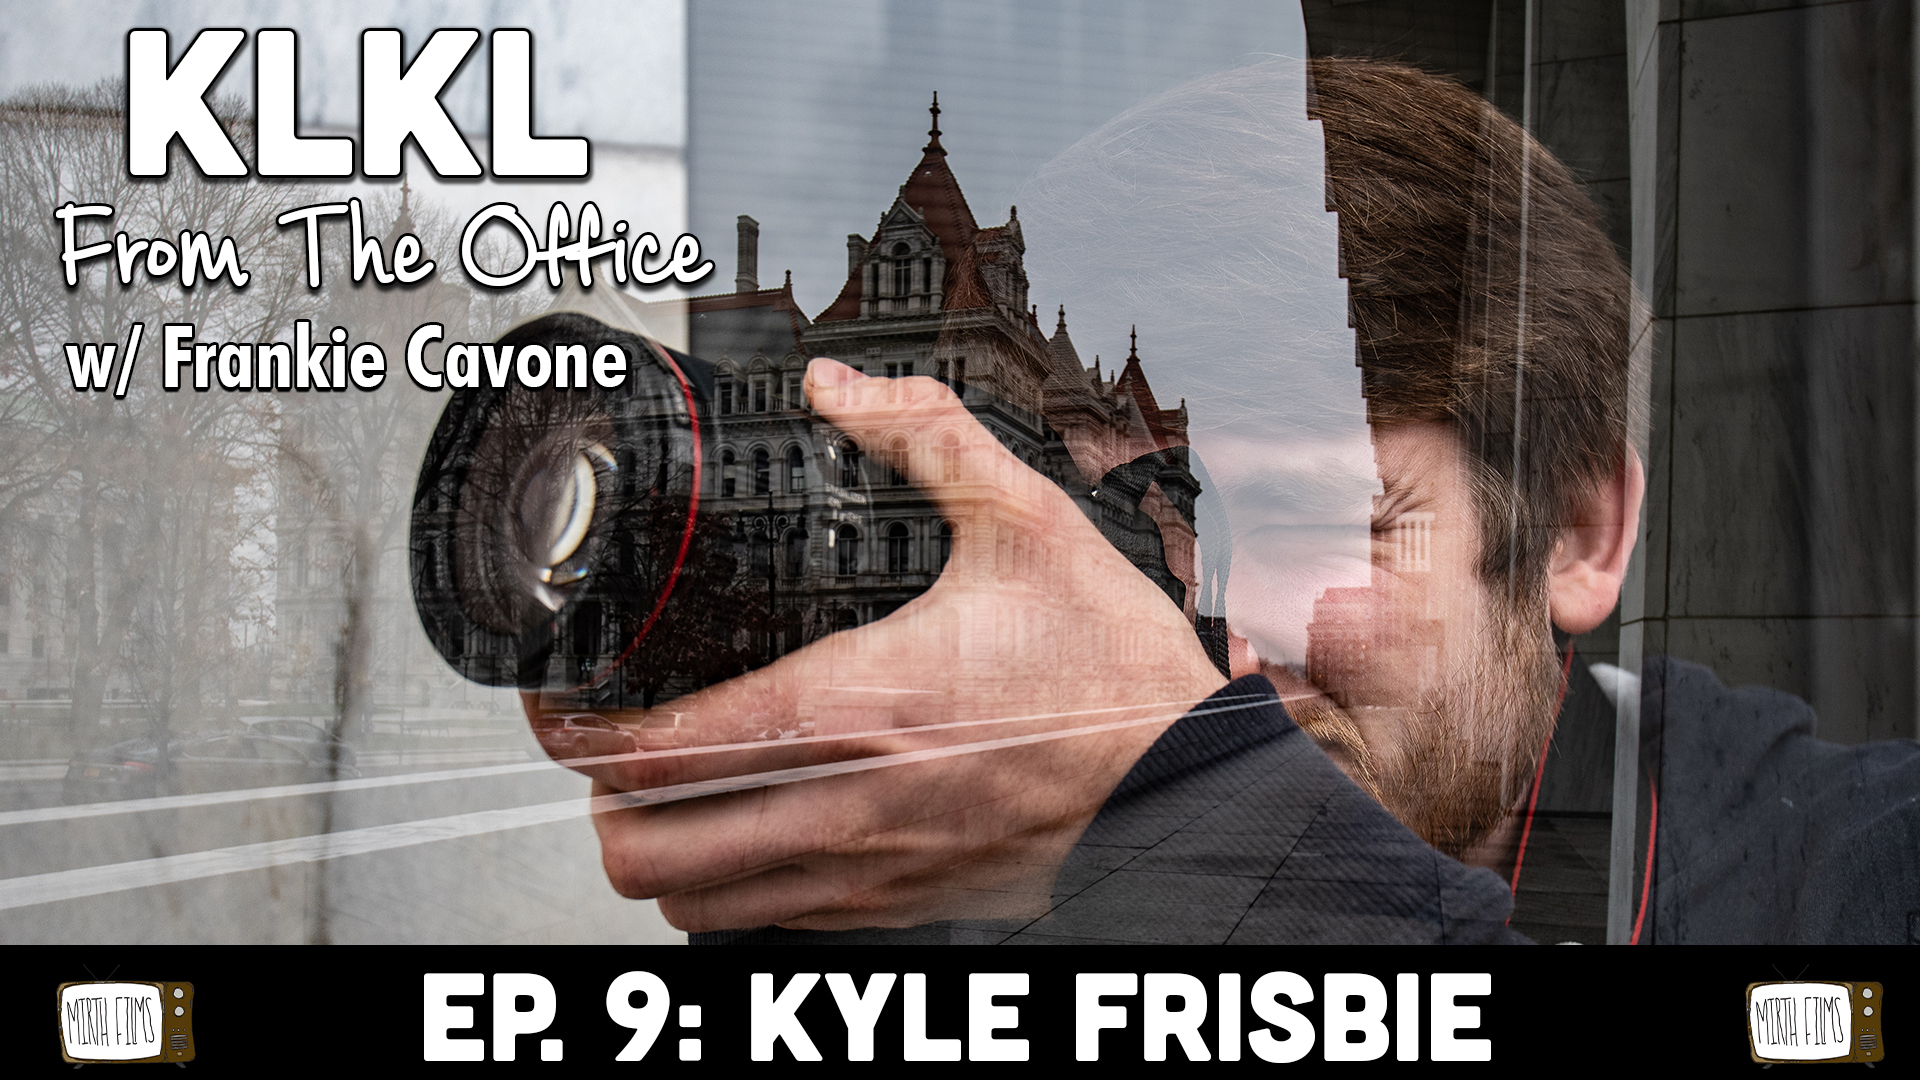 Kyle Frisbie | From The Office EP. 9 with Frankie Cavone